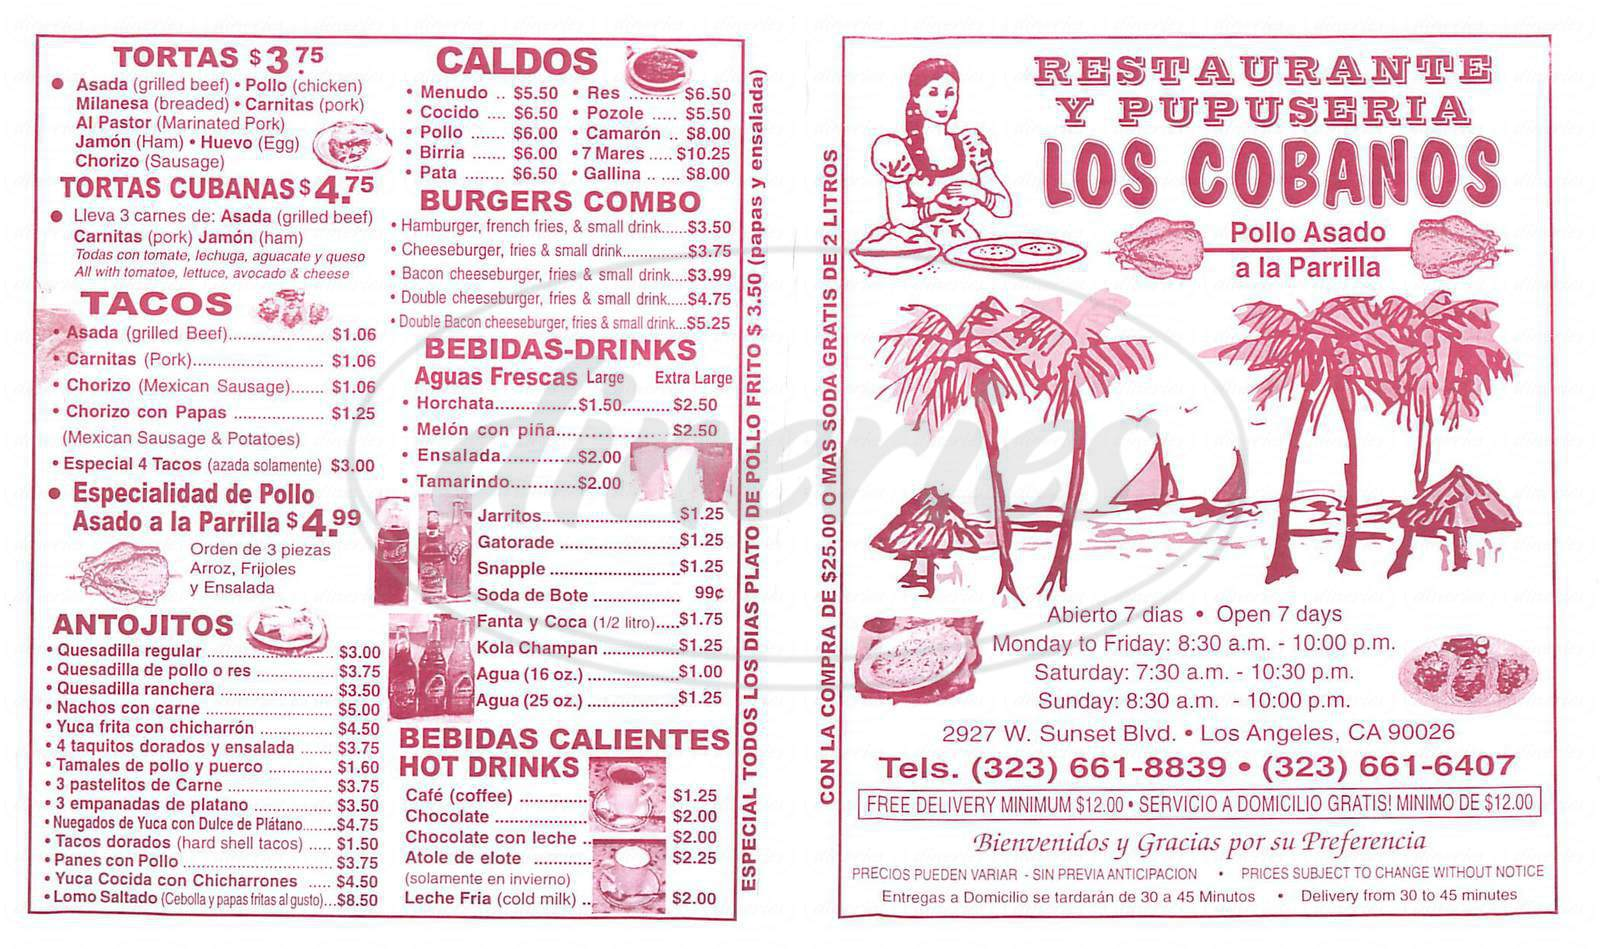 menu for Los Cobanos